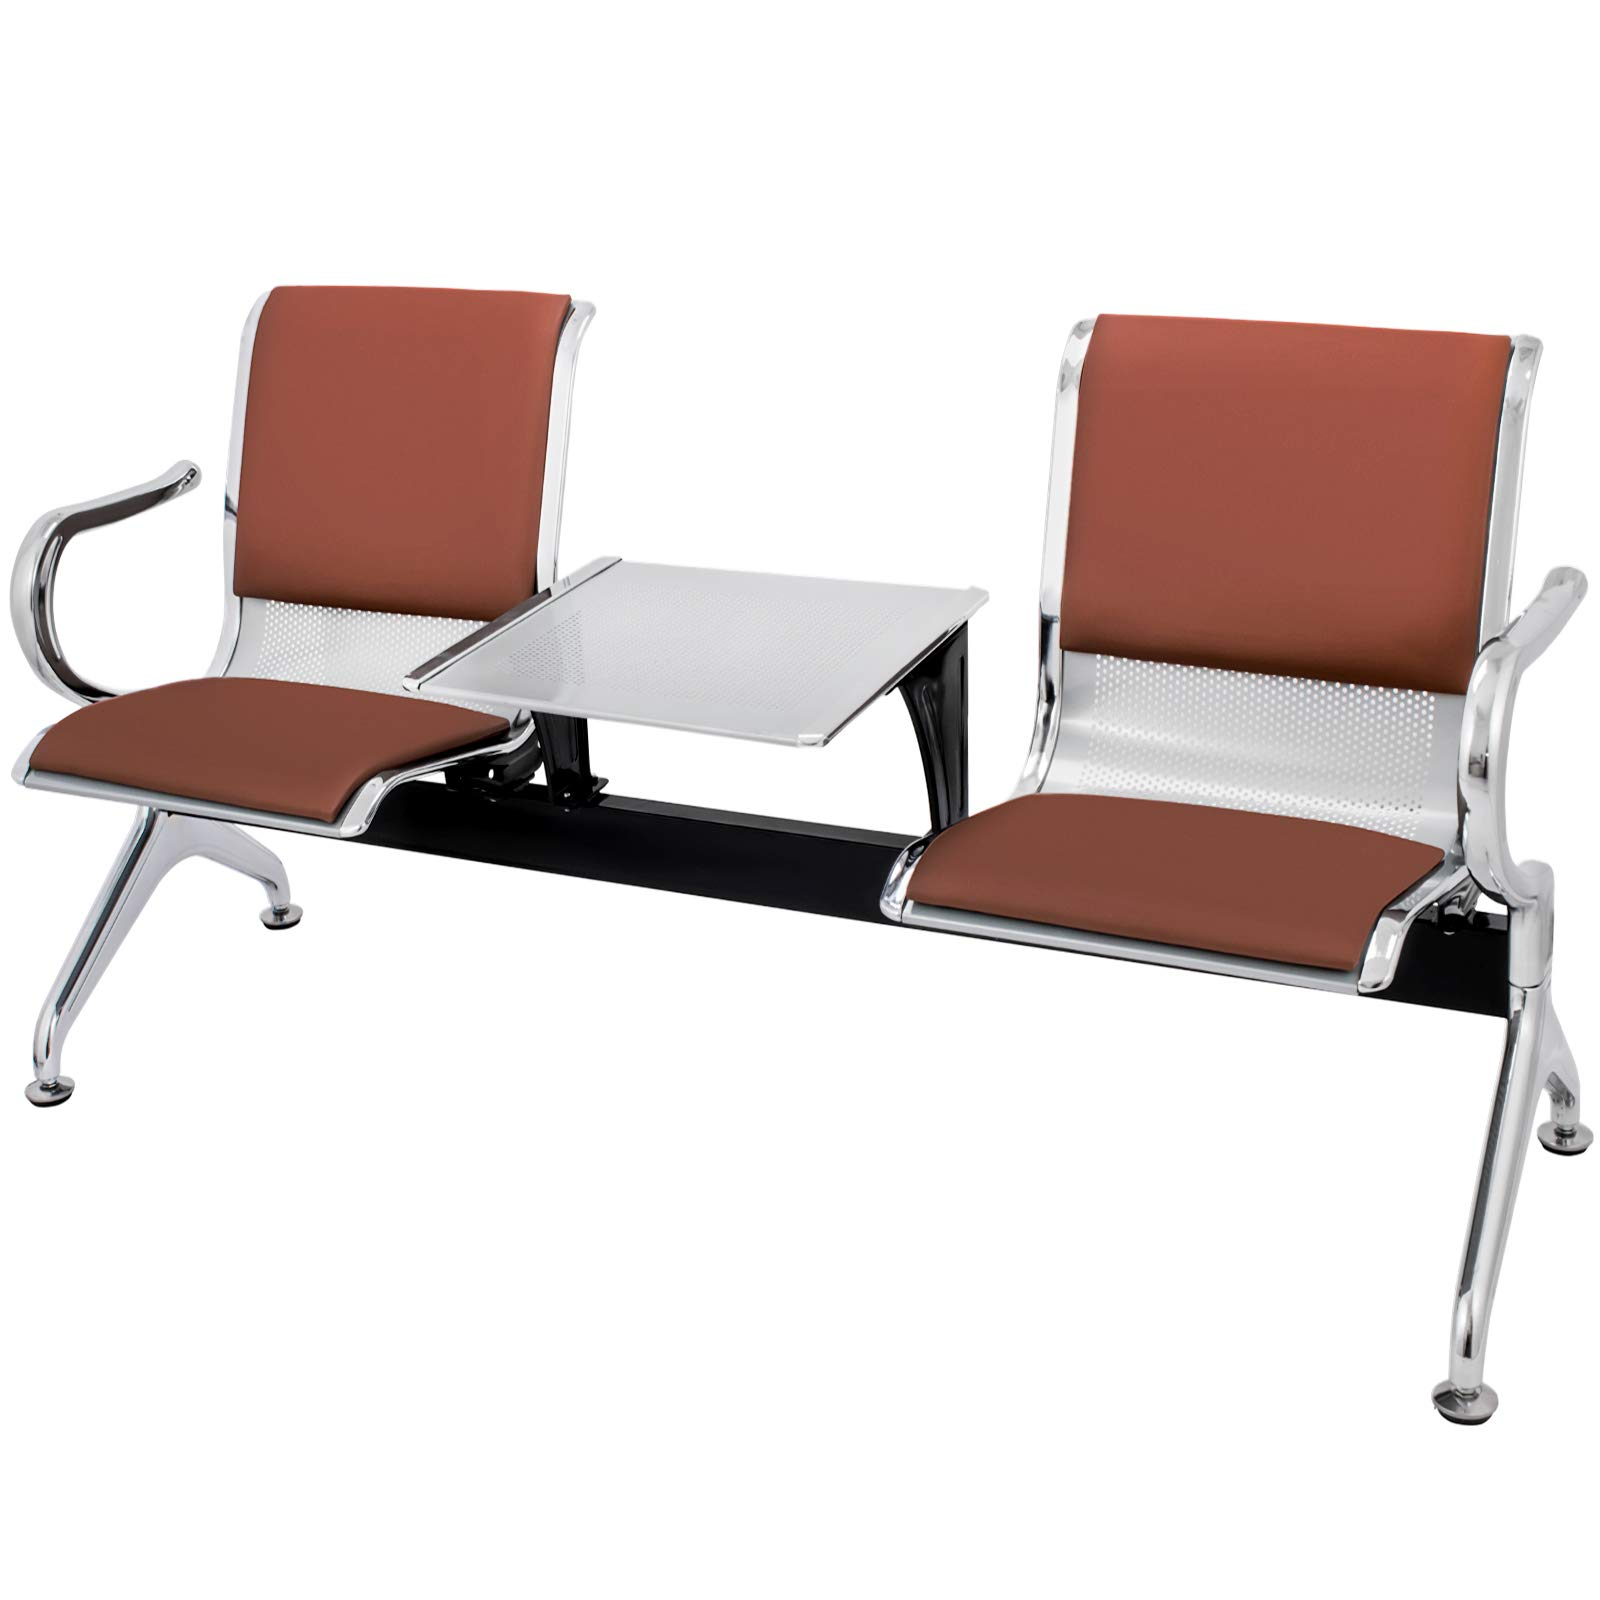 VEVOR Waiting Room Chairs with Table 2 Seat PU Leather Business Reception Bench Waiting Chairs for Office Barbershop Salon Airport Bank Hospital Market(2 Seat,Brown) by VEVOR